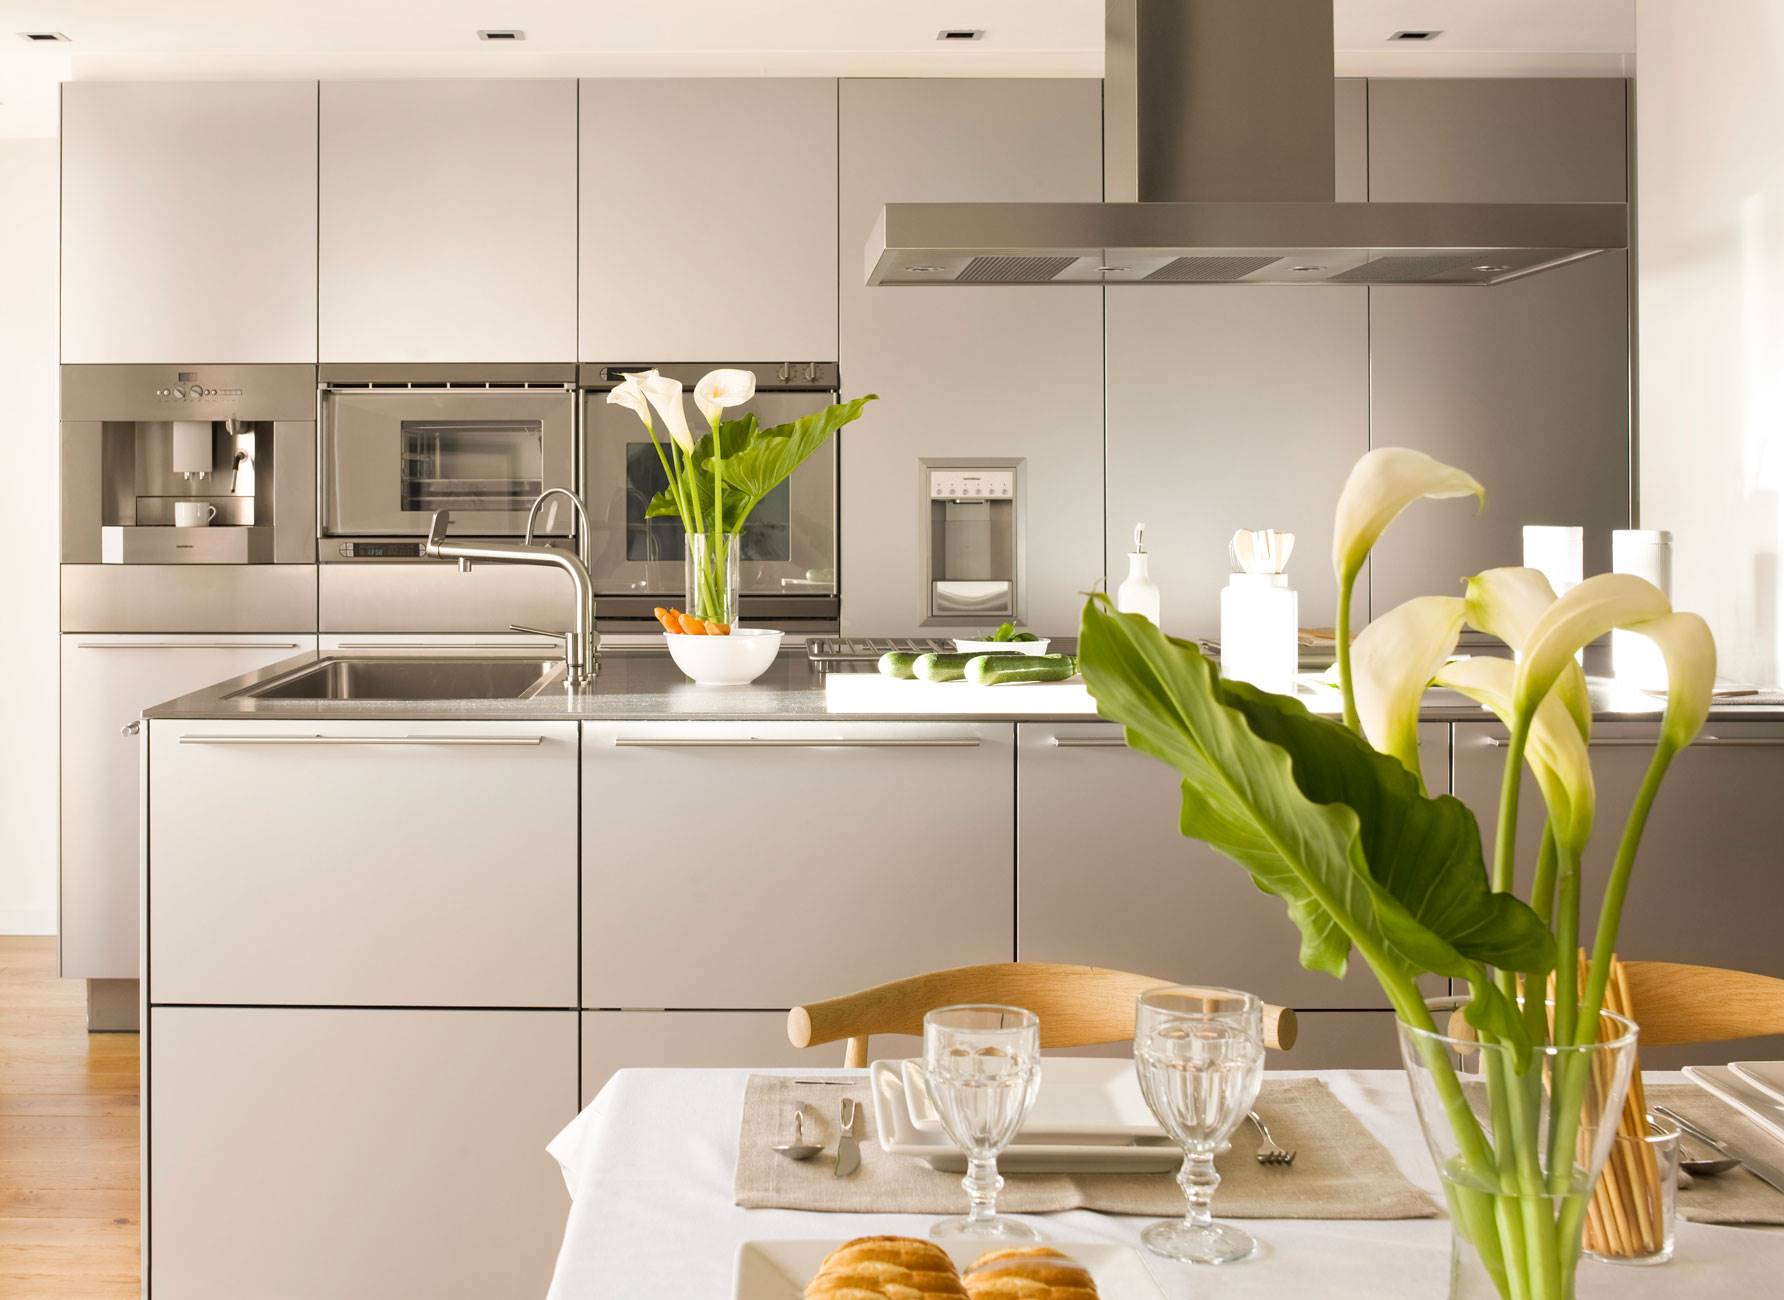 kitchen-with-island-and-built-in-appliances 299726. Total integration